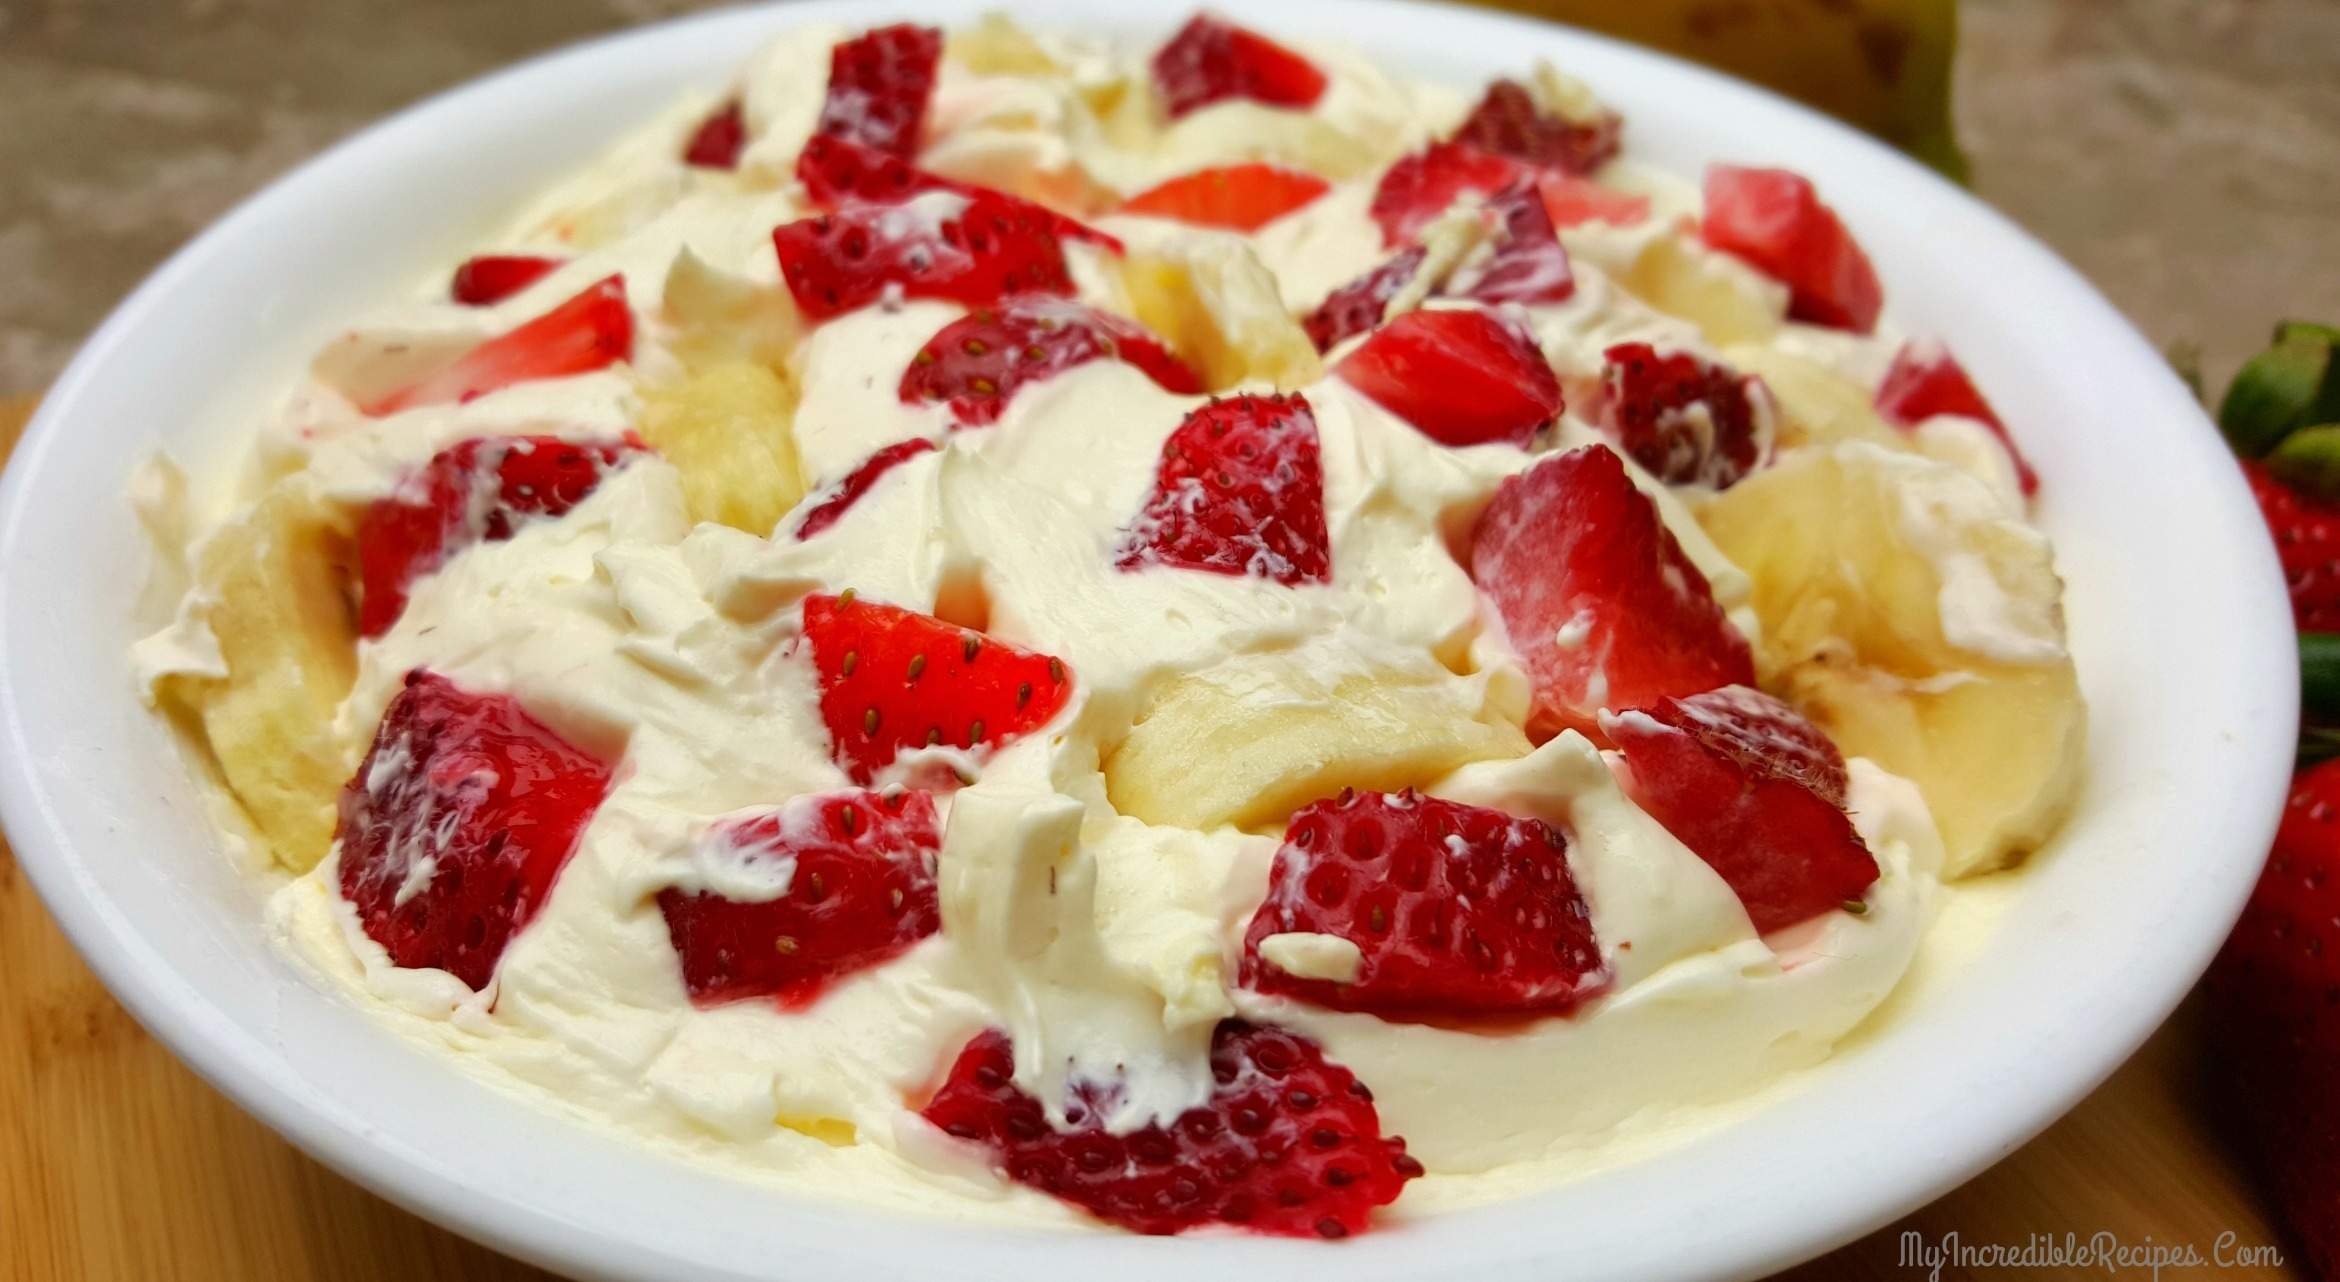 Strawberry Banana Cheesecake Salad!